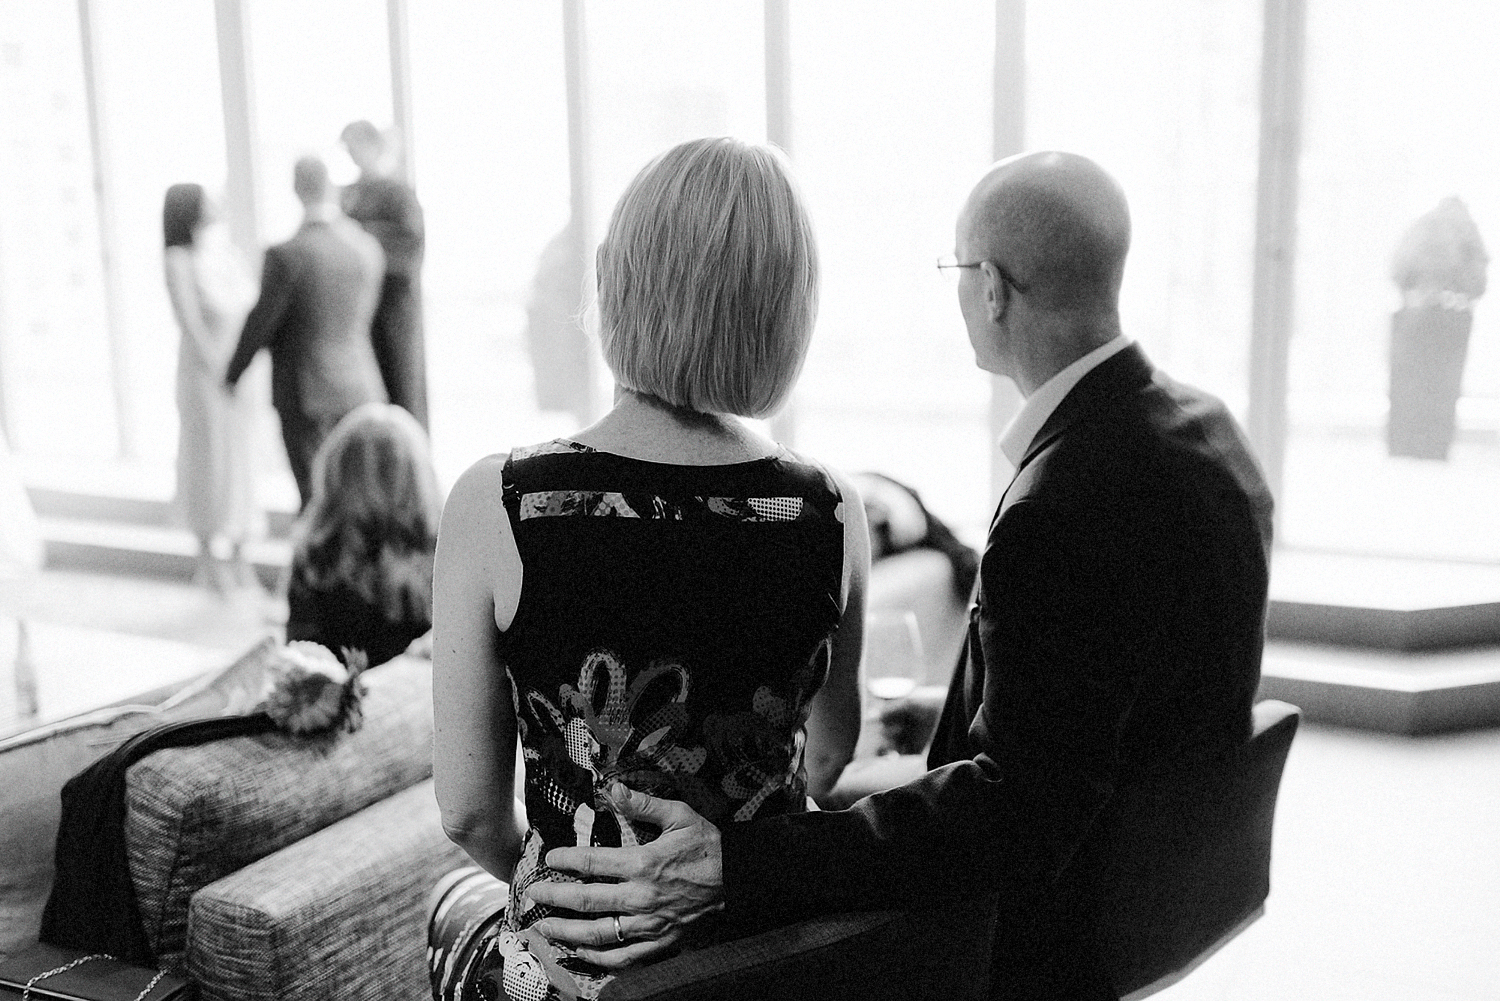 40-One-King-West-INtimate-Wedding-Ceremony-BW-Film-ANalog-Best-Wedding-Photographers-Toronto-Details-Flowers-Grain-candid-ceremony-emotions.jpg